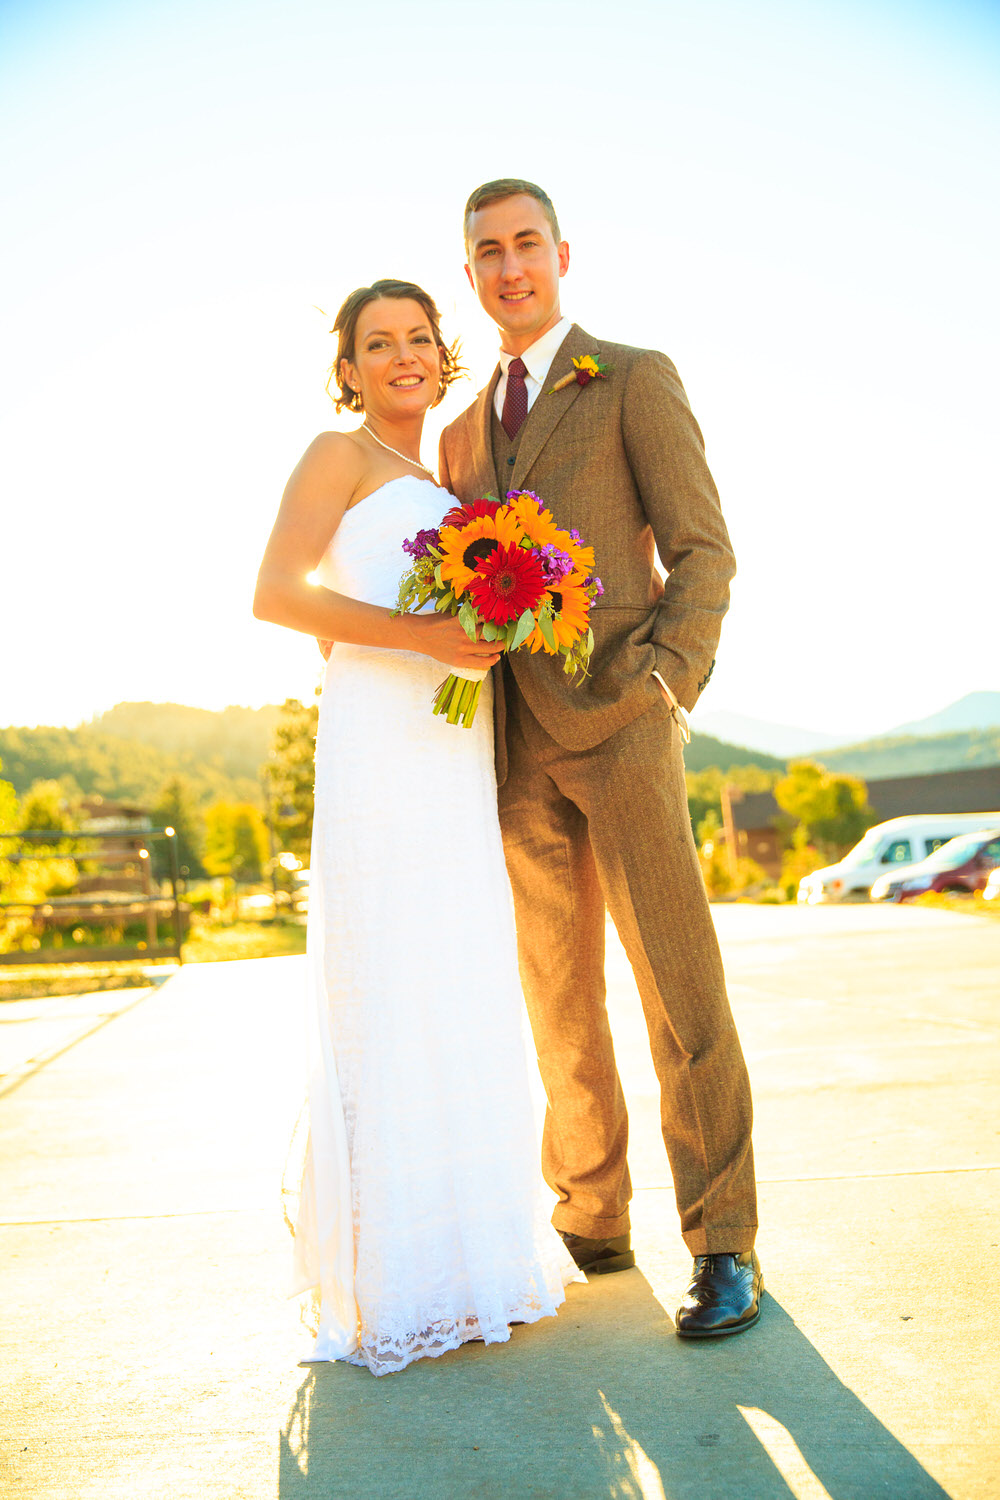 estes-park-wedding-photographer-tomKphoto-075.jpg